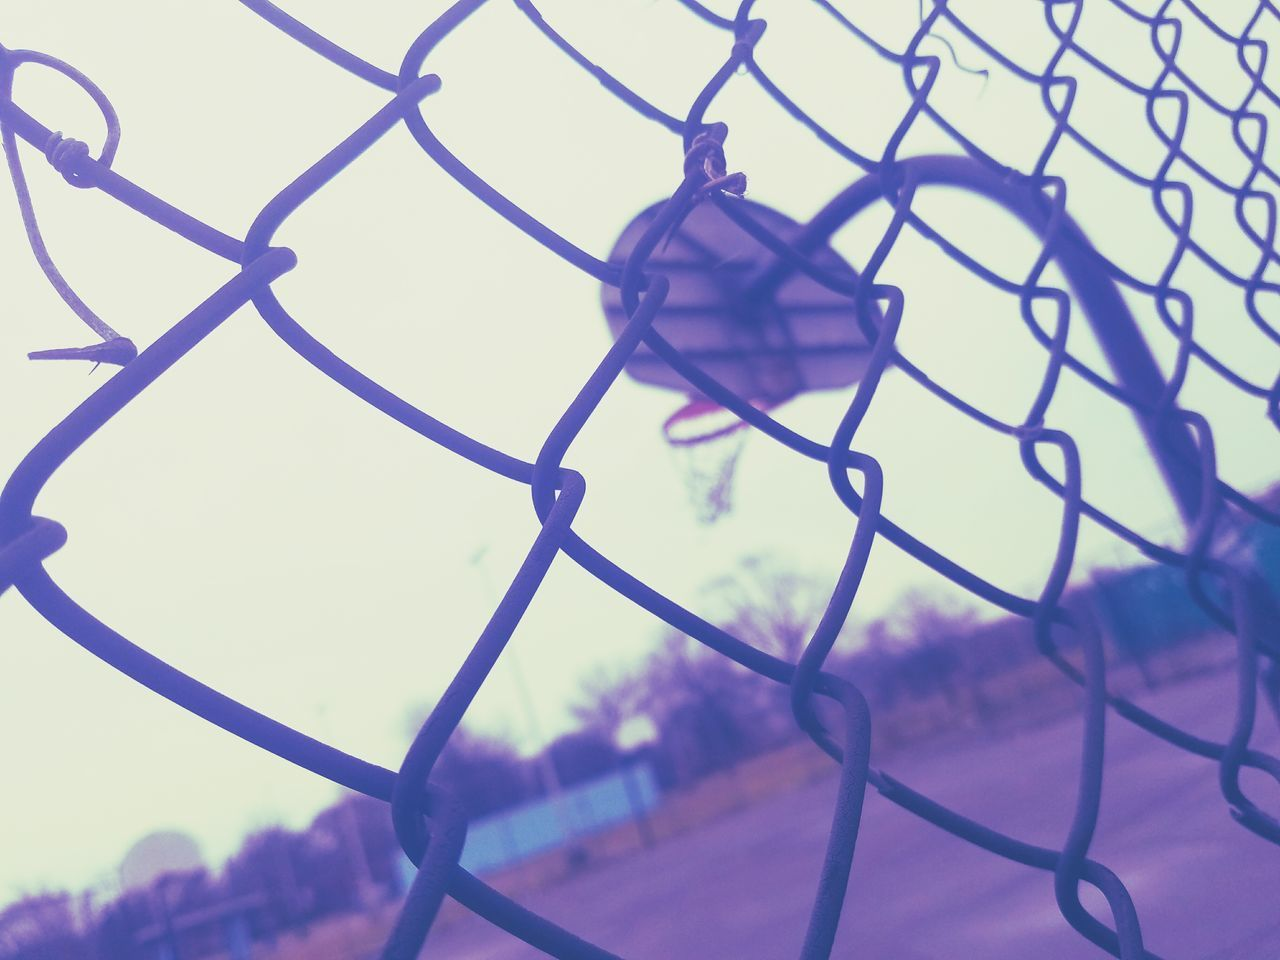 had to get the shot at this angleBasketball - Sport Sport Chainlink Fence Metal Sky No People Fence Basketball Hoop Outdoors Day Playground Streetphotography Real Life Beautiful Sky Nature Stand Out From The Crowd Leisure Activity Photooftheday Lovelovelove Getting Creative Walkingaround Learn & Shoot: Balancing Elements Photography Is My Escape From Reality! Real Photography Live, Love, Laugh